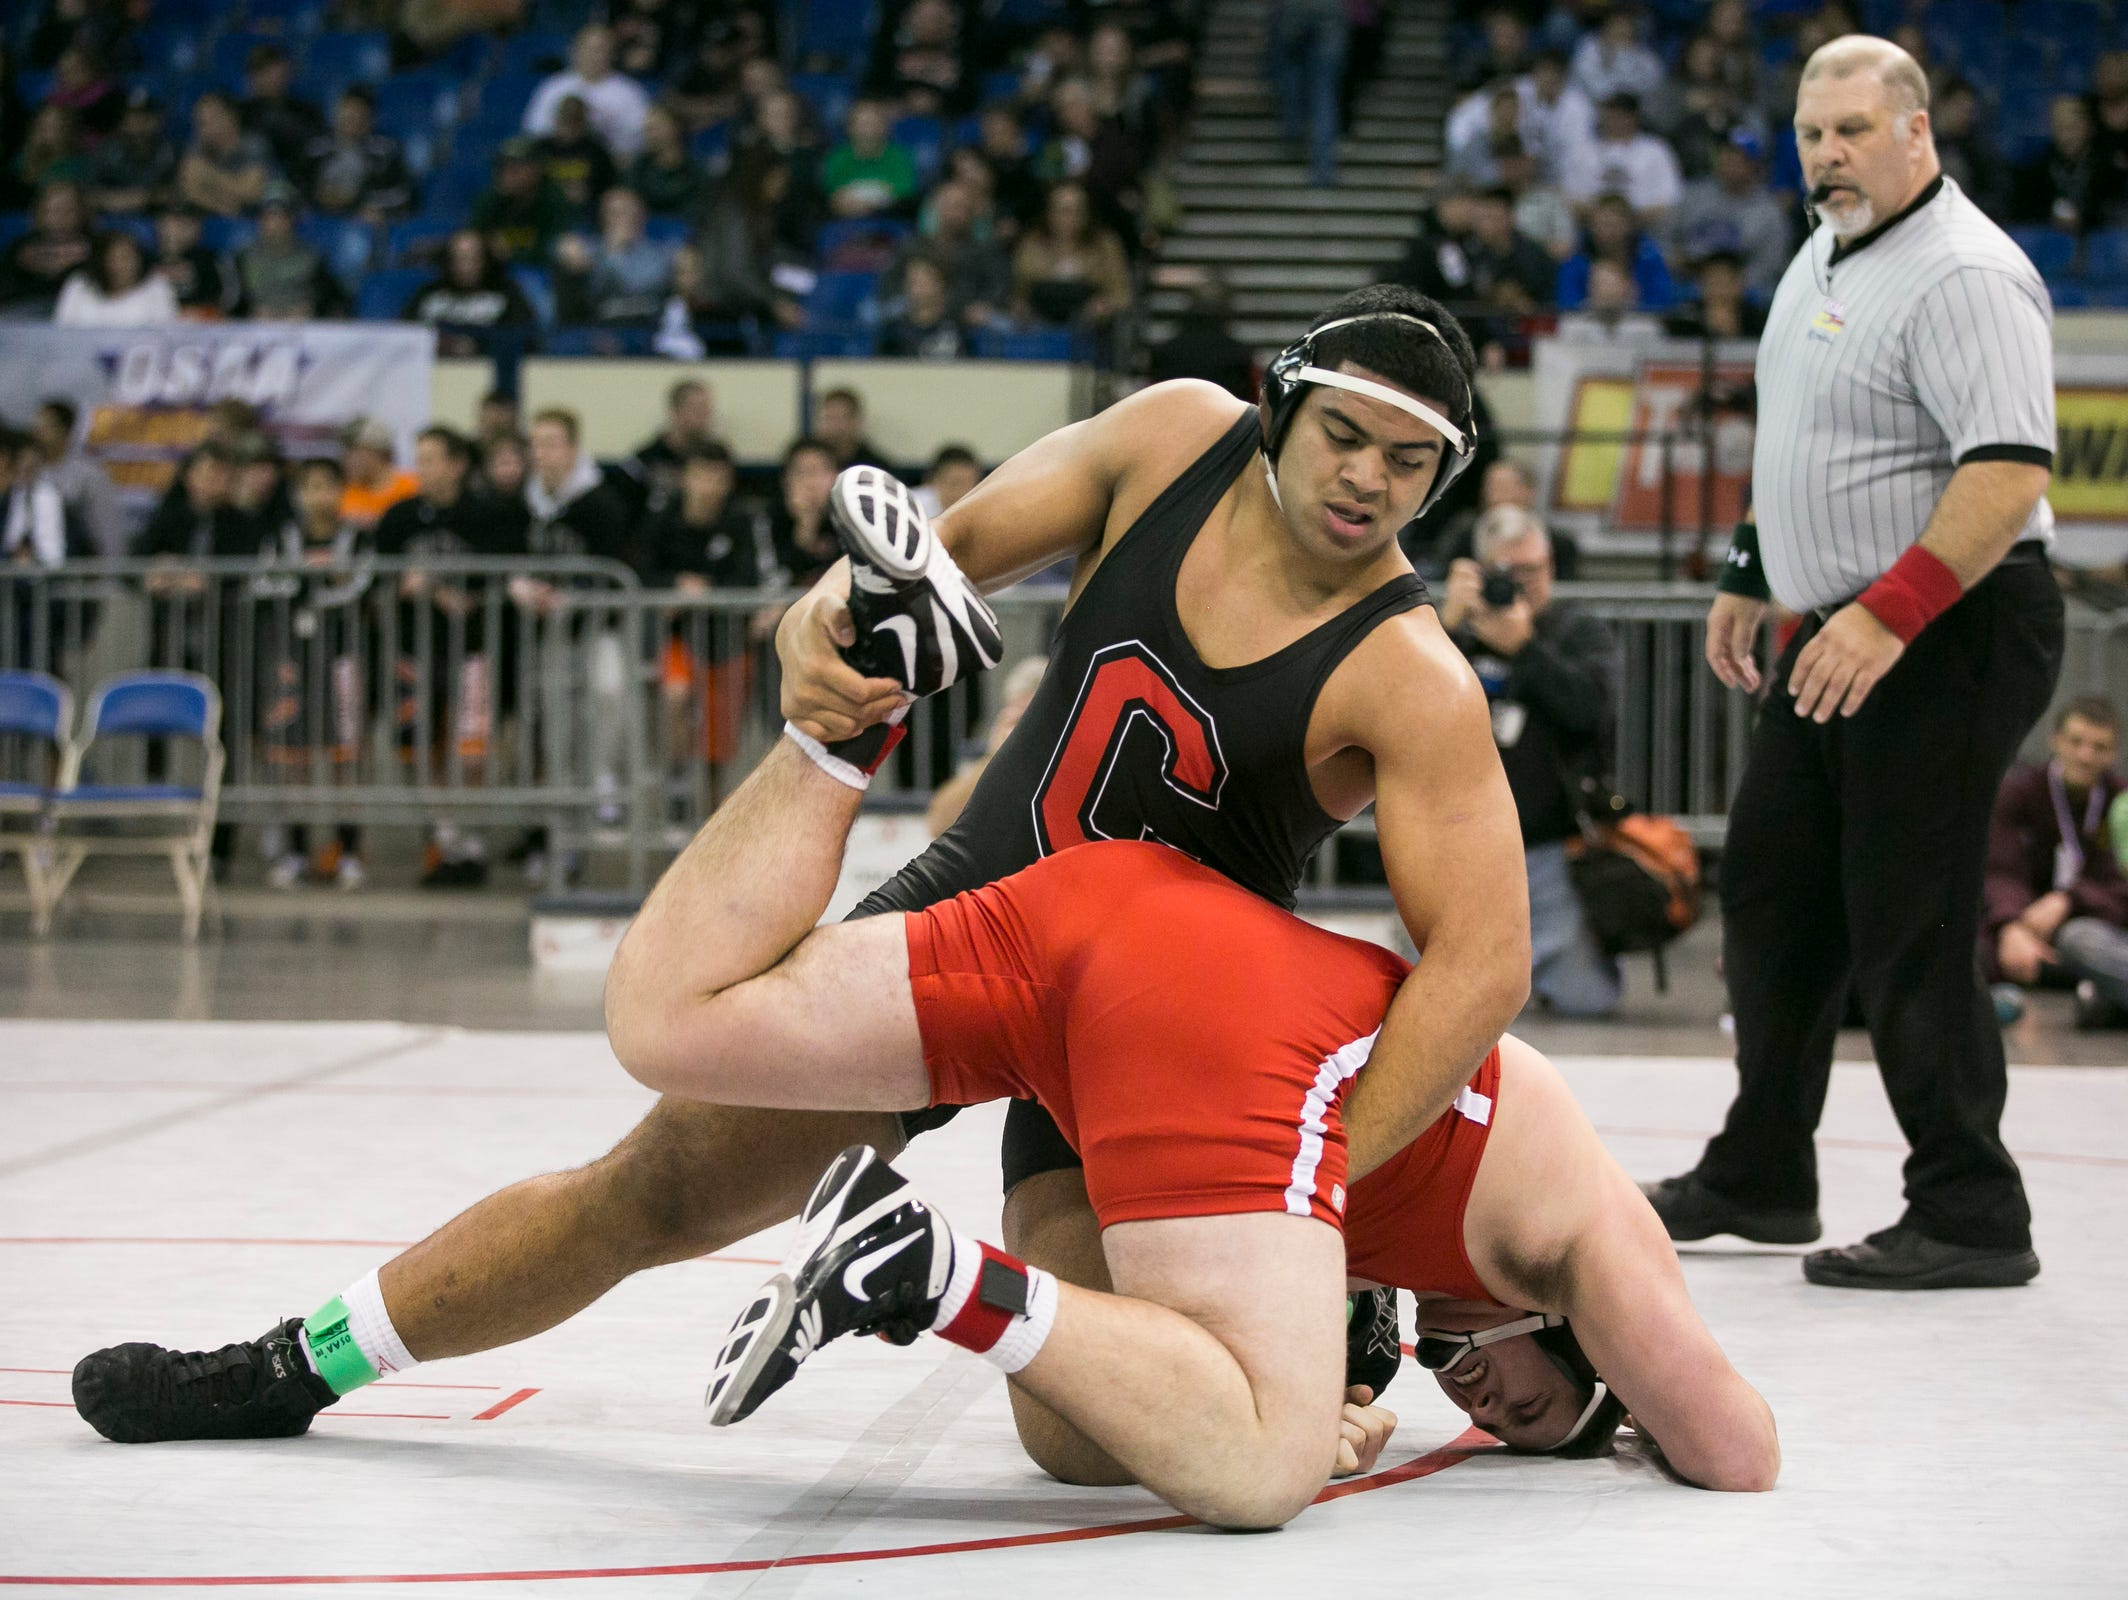 Central's Marlon Tuipulotu is a finalist for the All-Mid-Valley wrestler of the year.